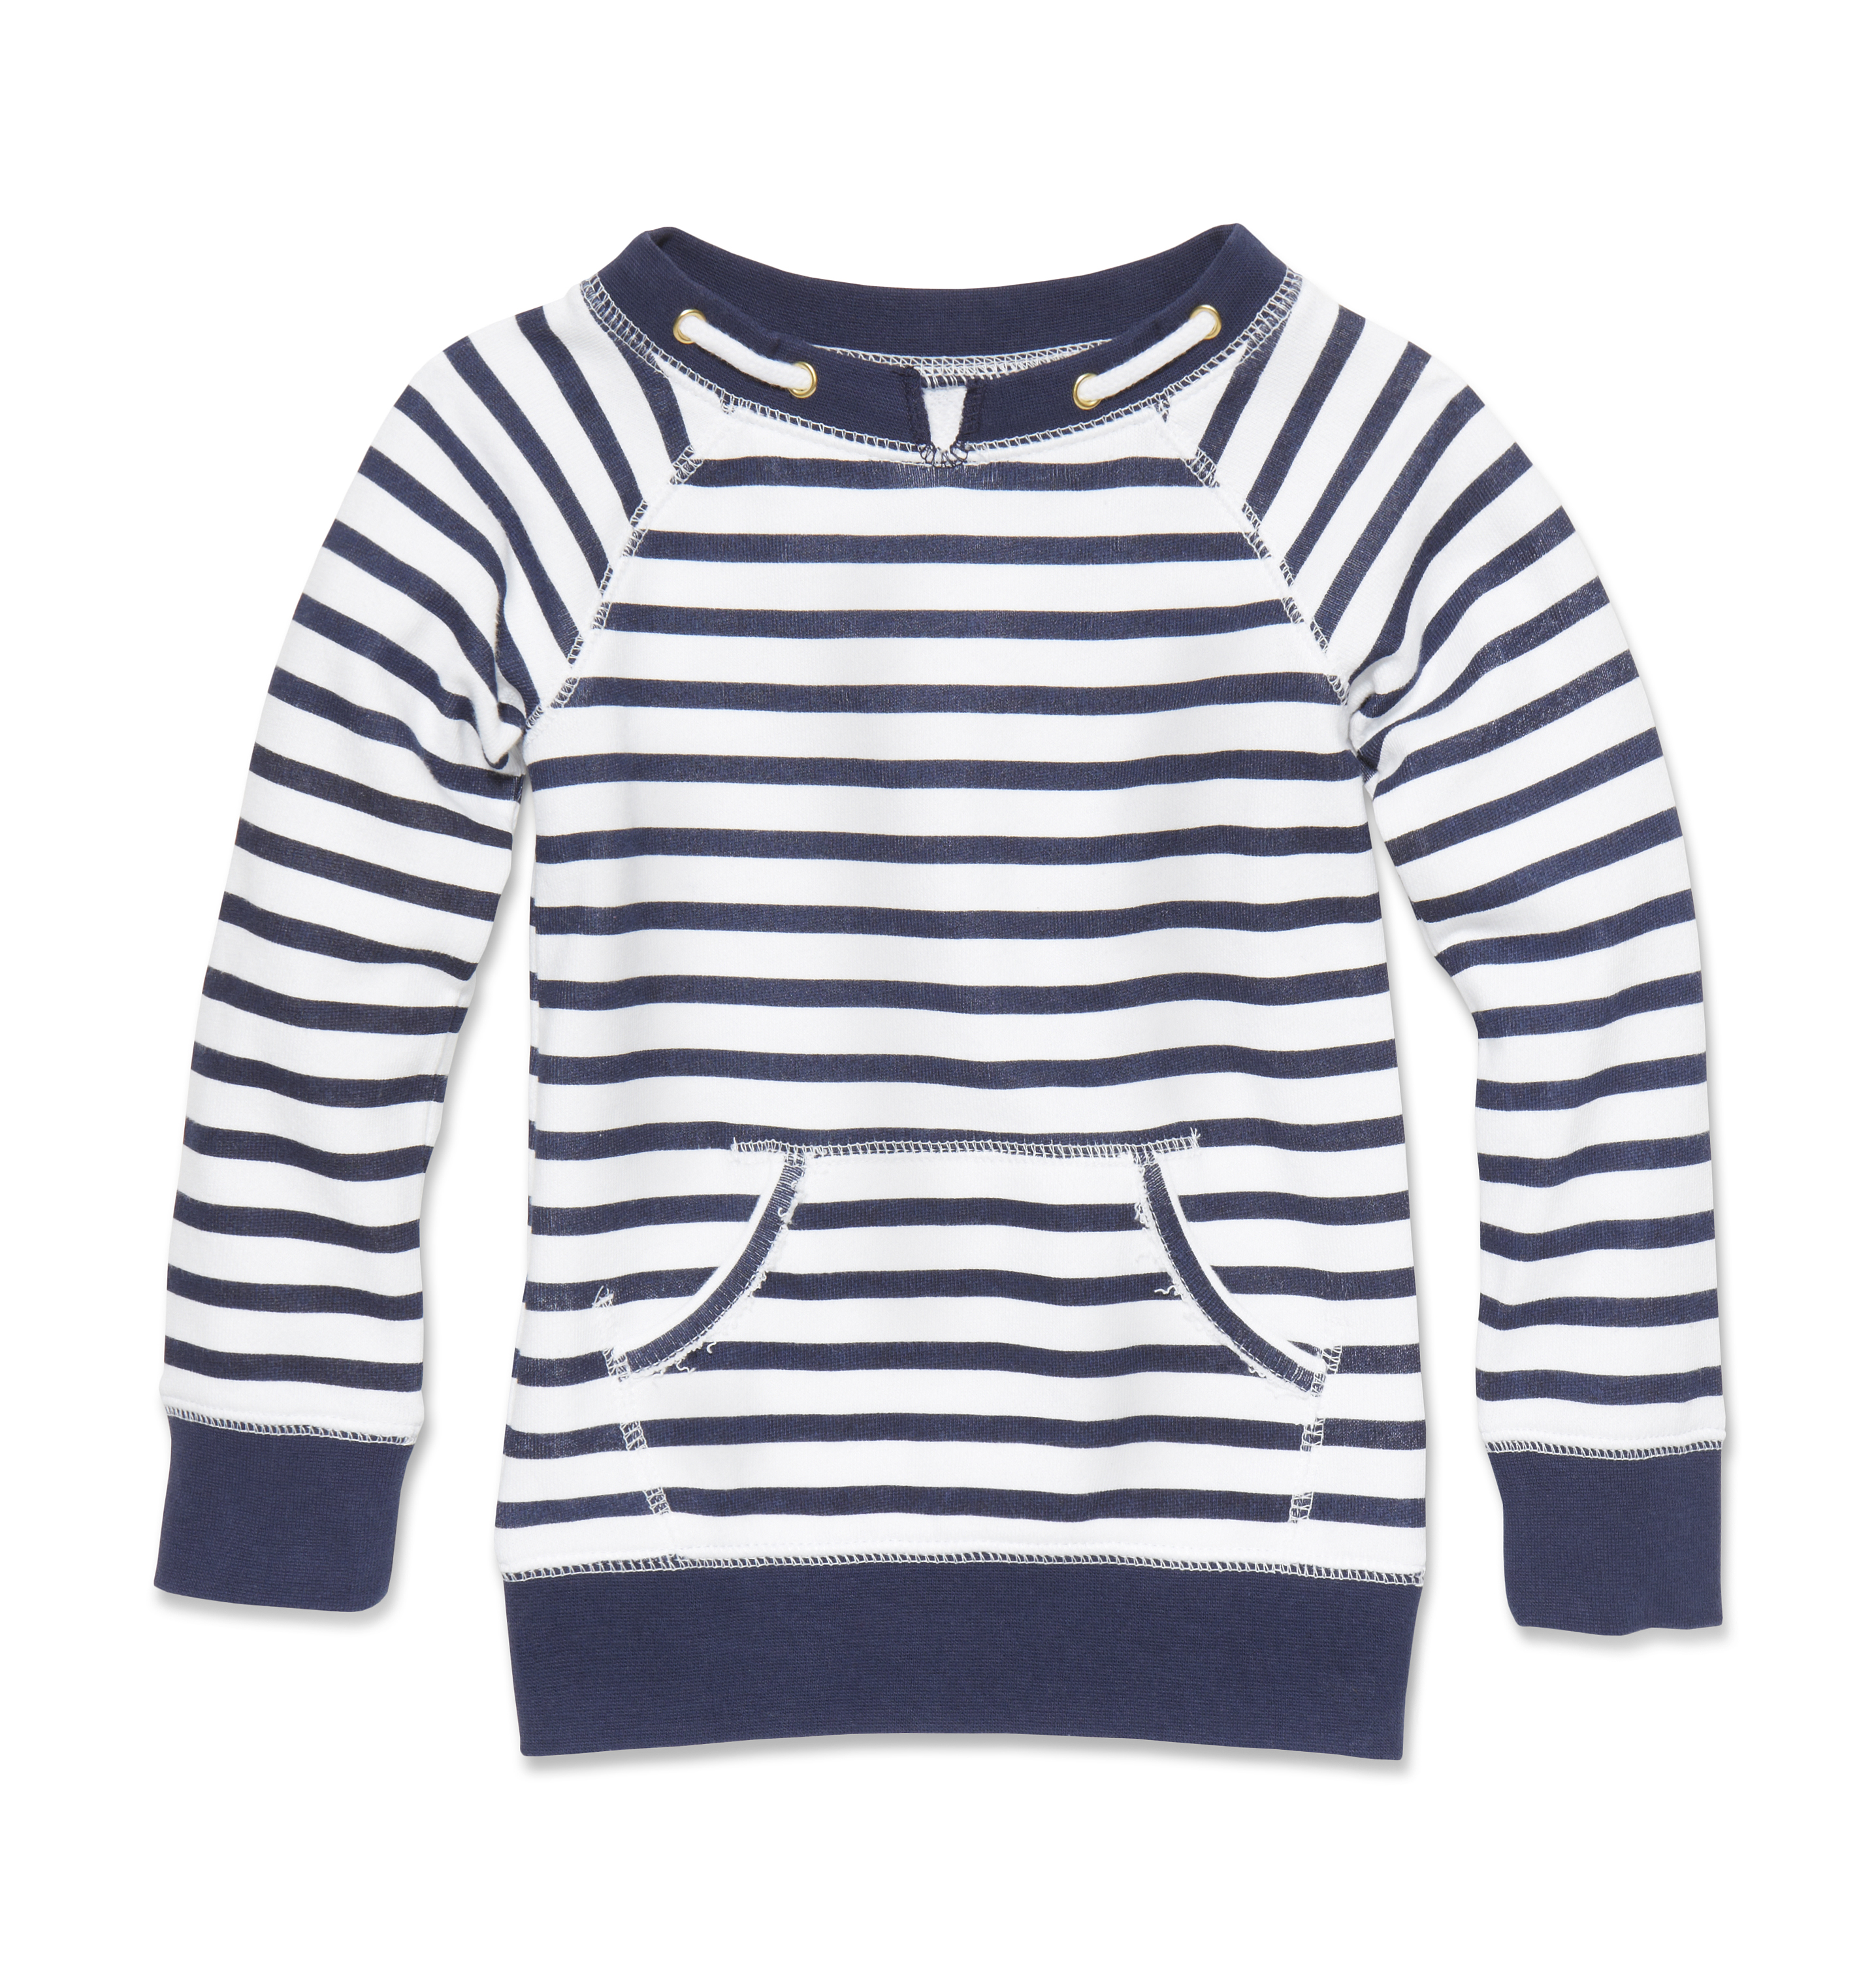 Kids Toddler Girl Stripe Sweatshirt High-res